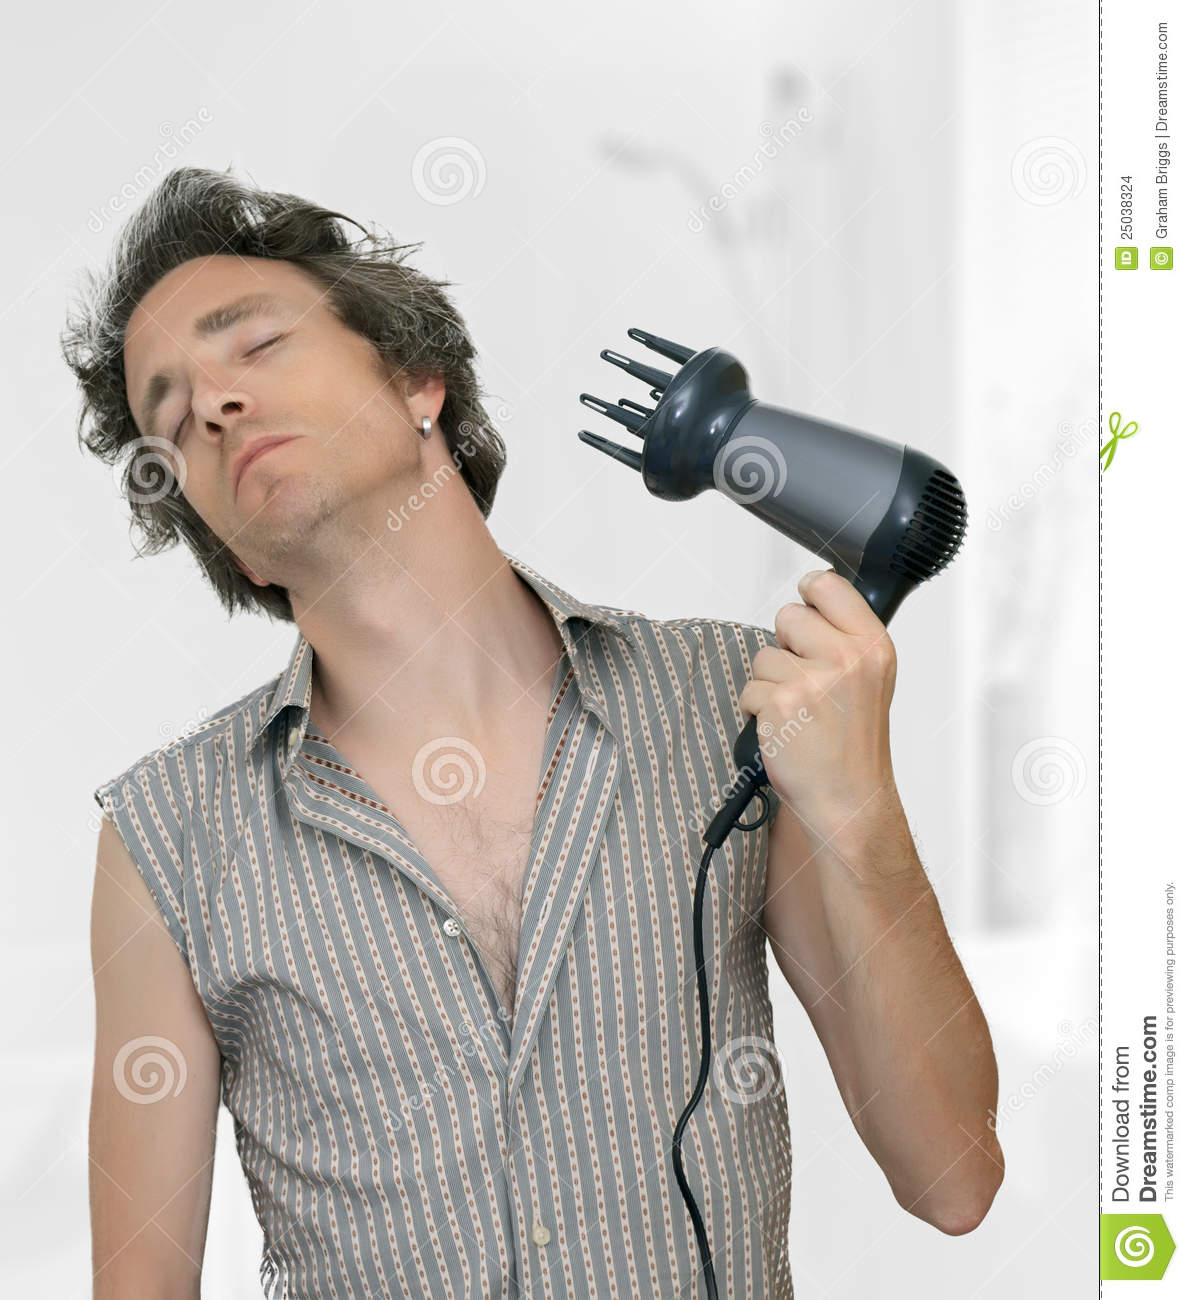 Man Blow Drying His Hair Stock Photo Image Of Care Adult 25038324